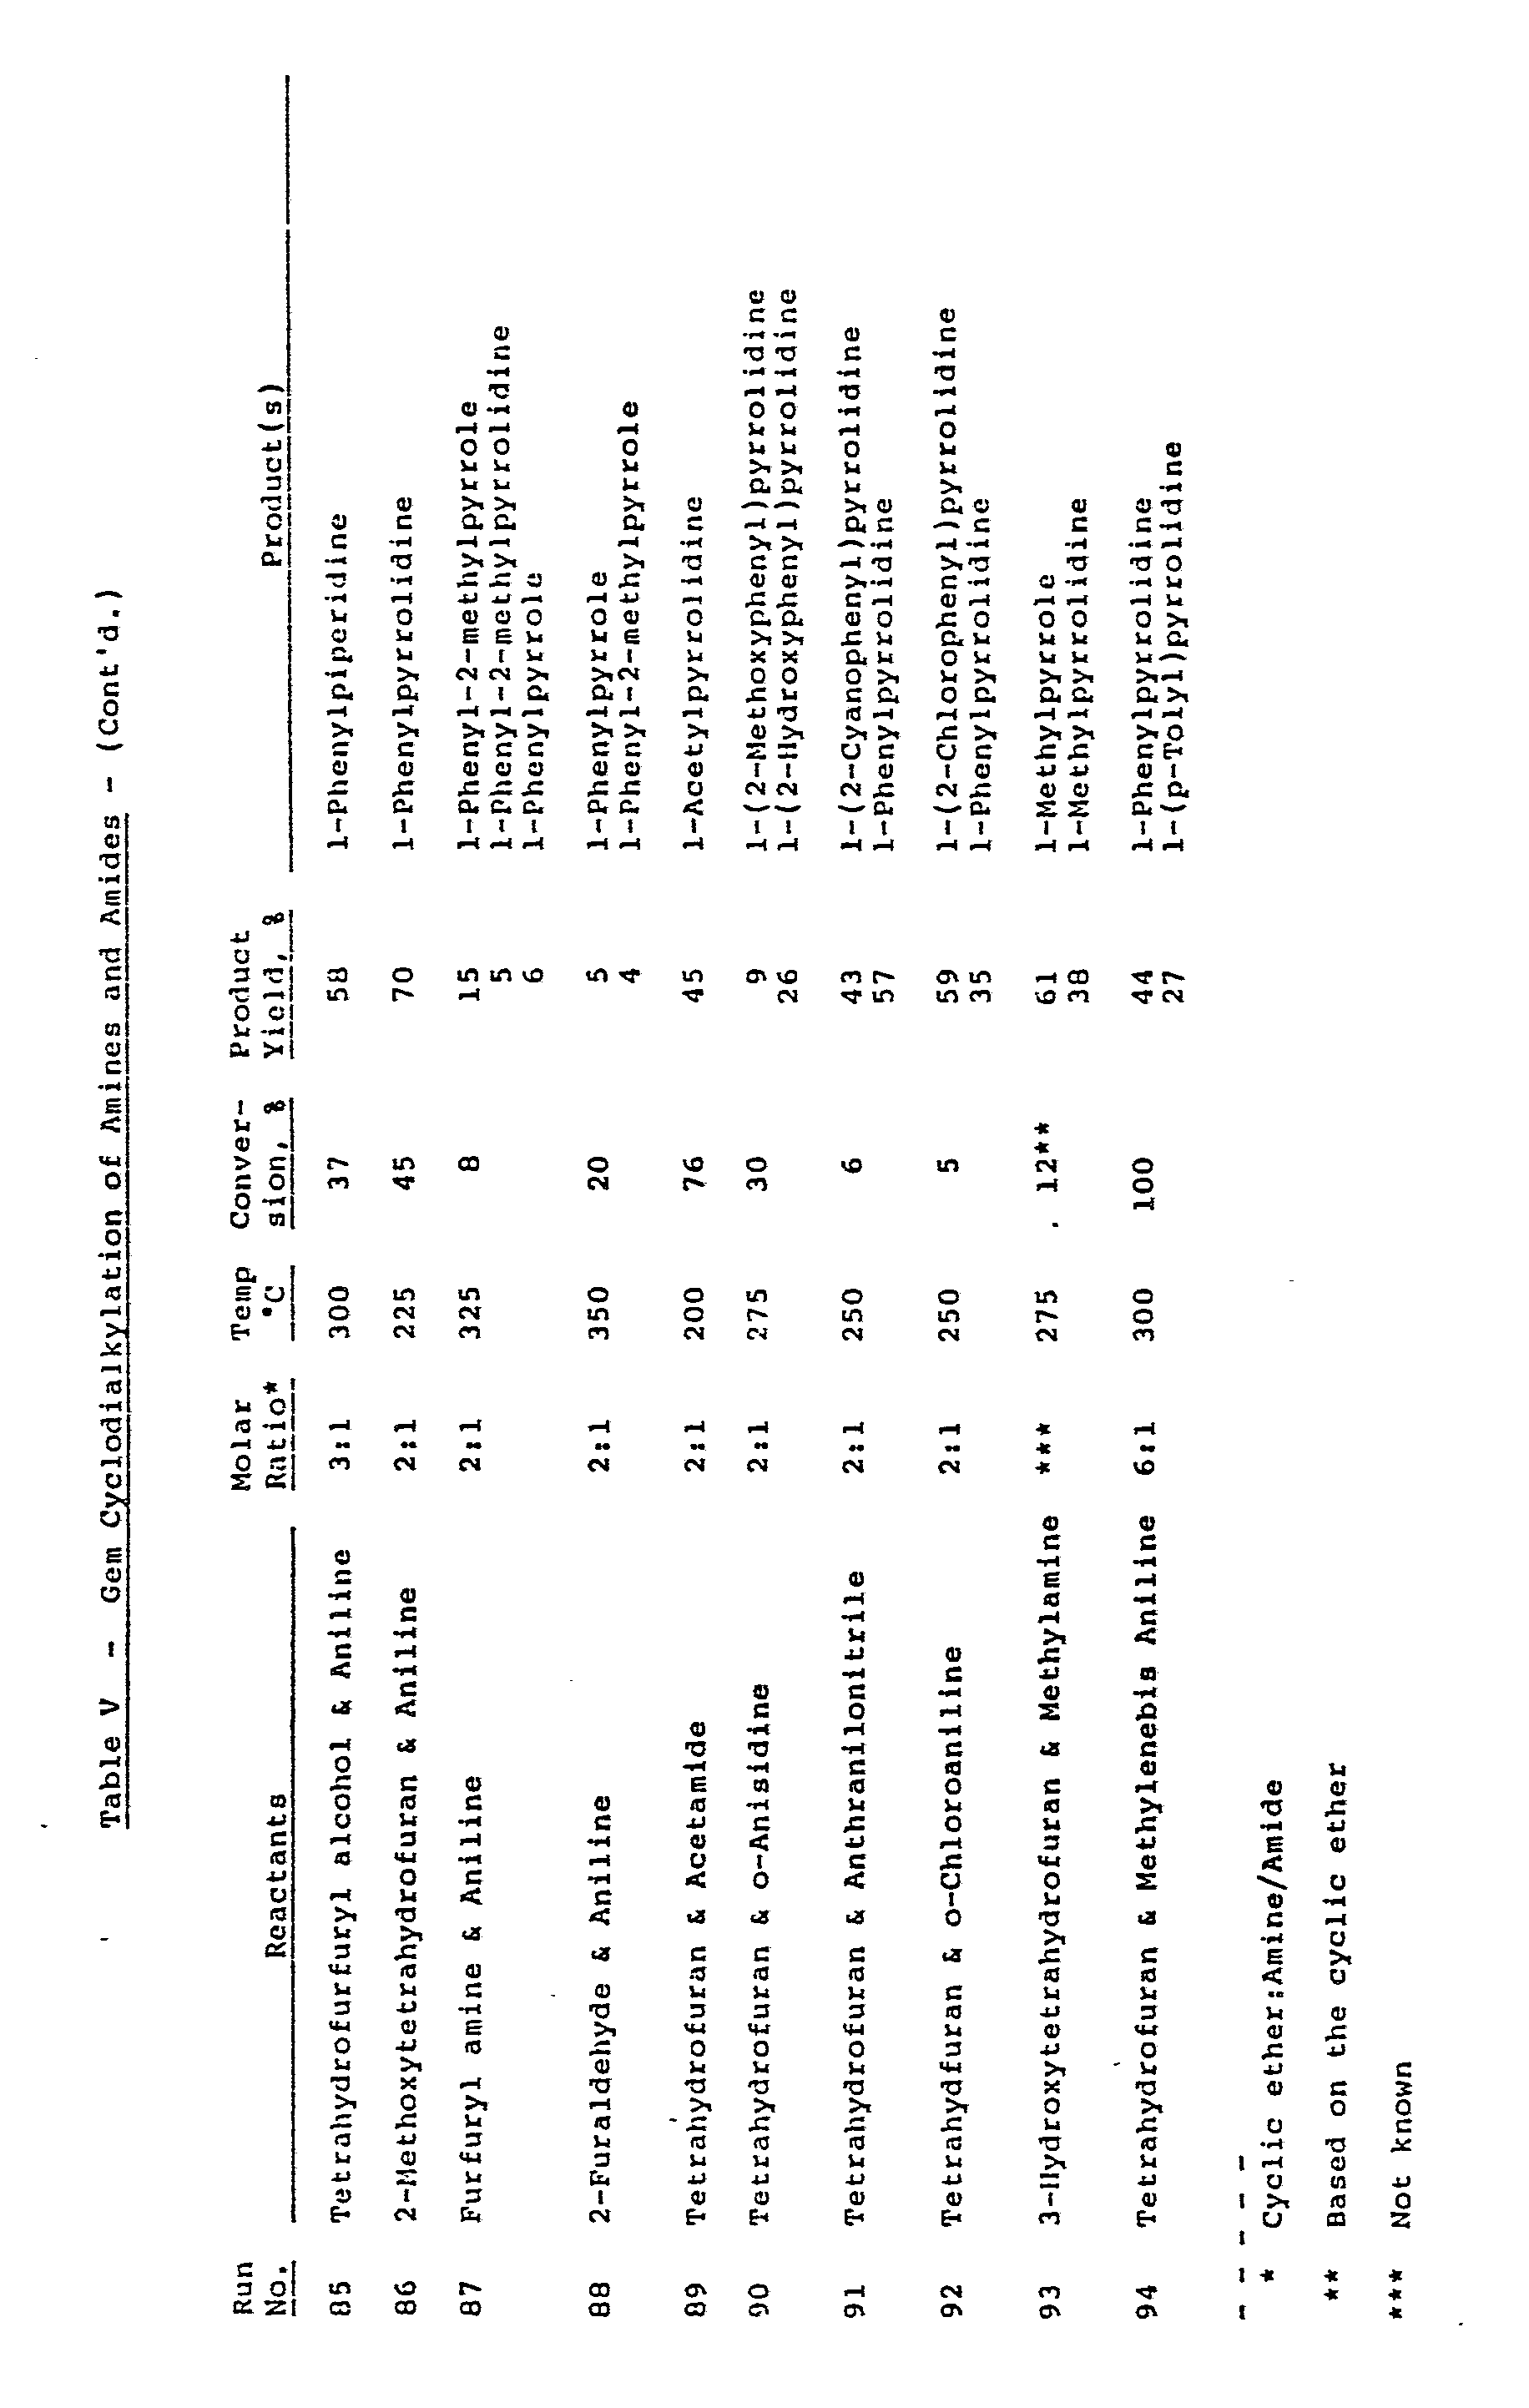 Alkylation of amines and amides - Patent 0240631